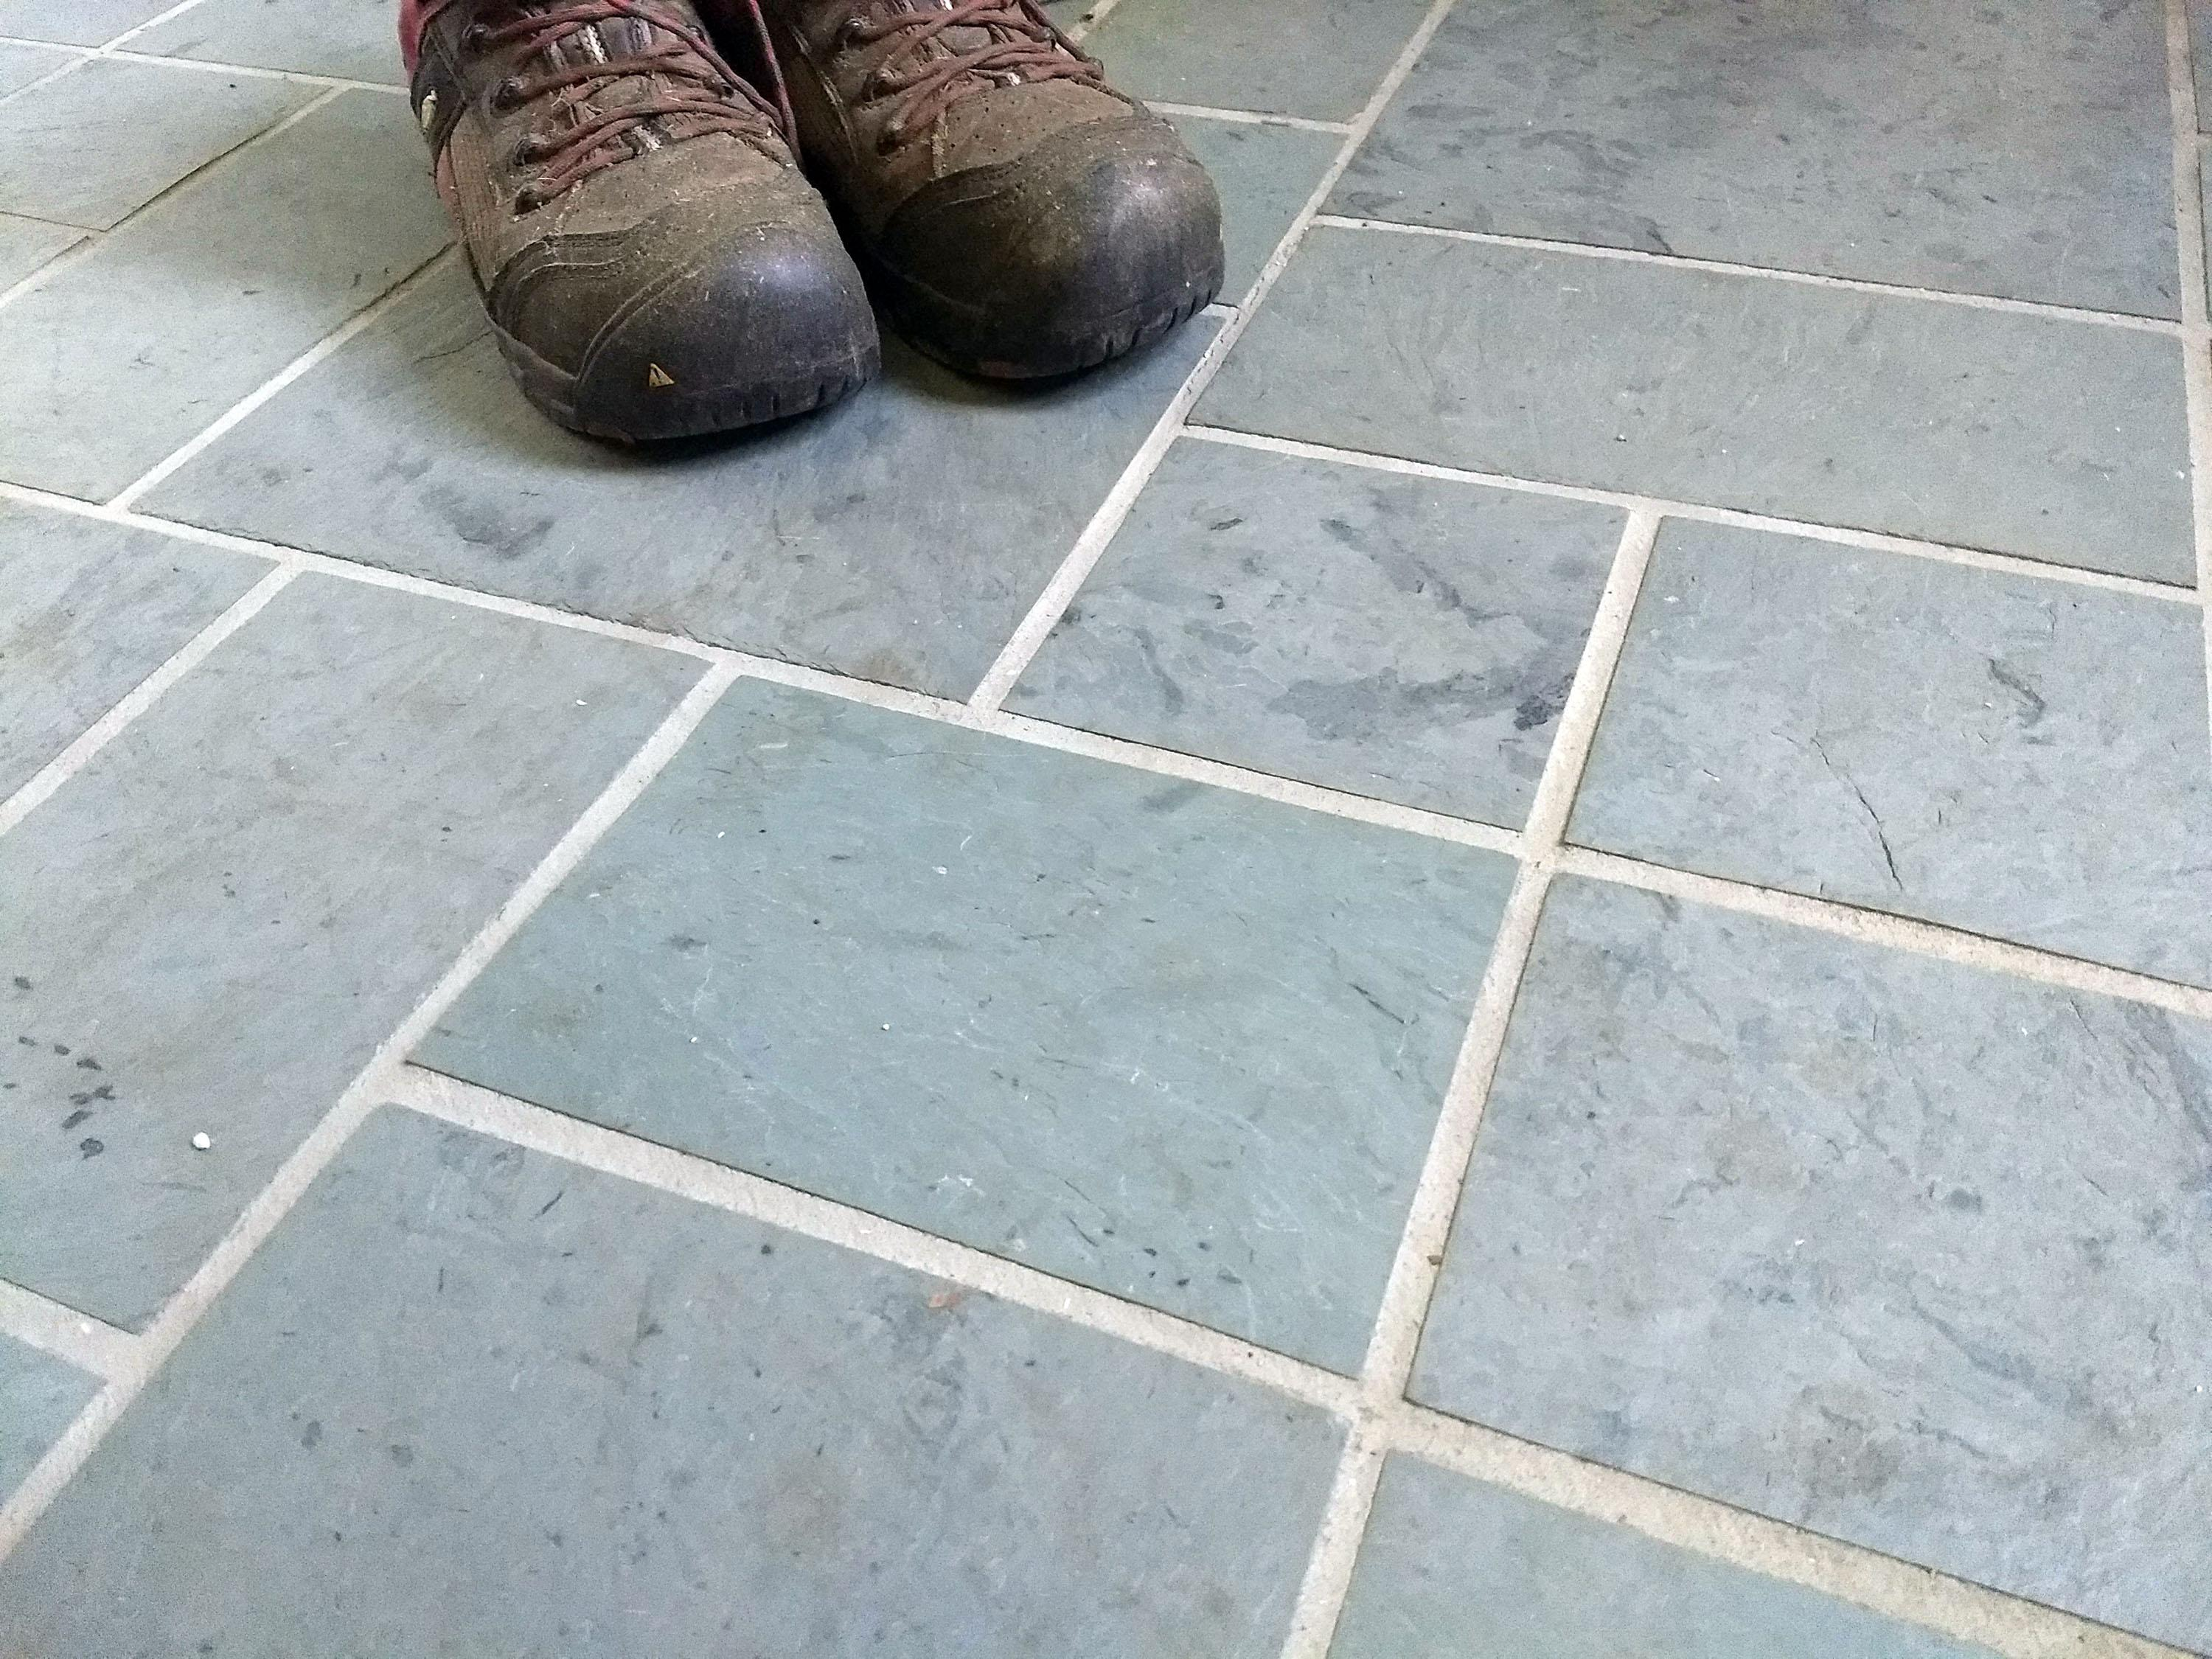 Ask the Builder: To change grout color, use stain, not paint | The ...